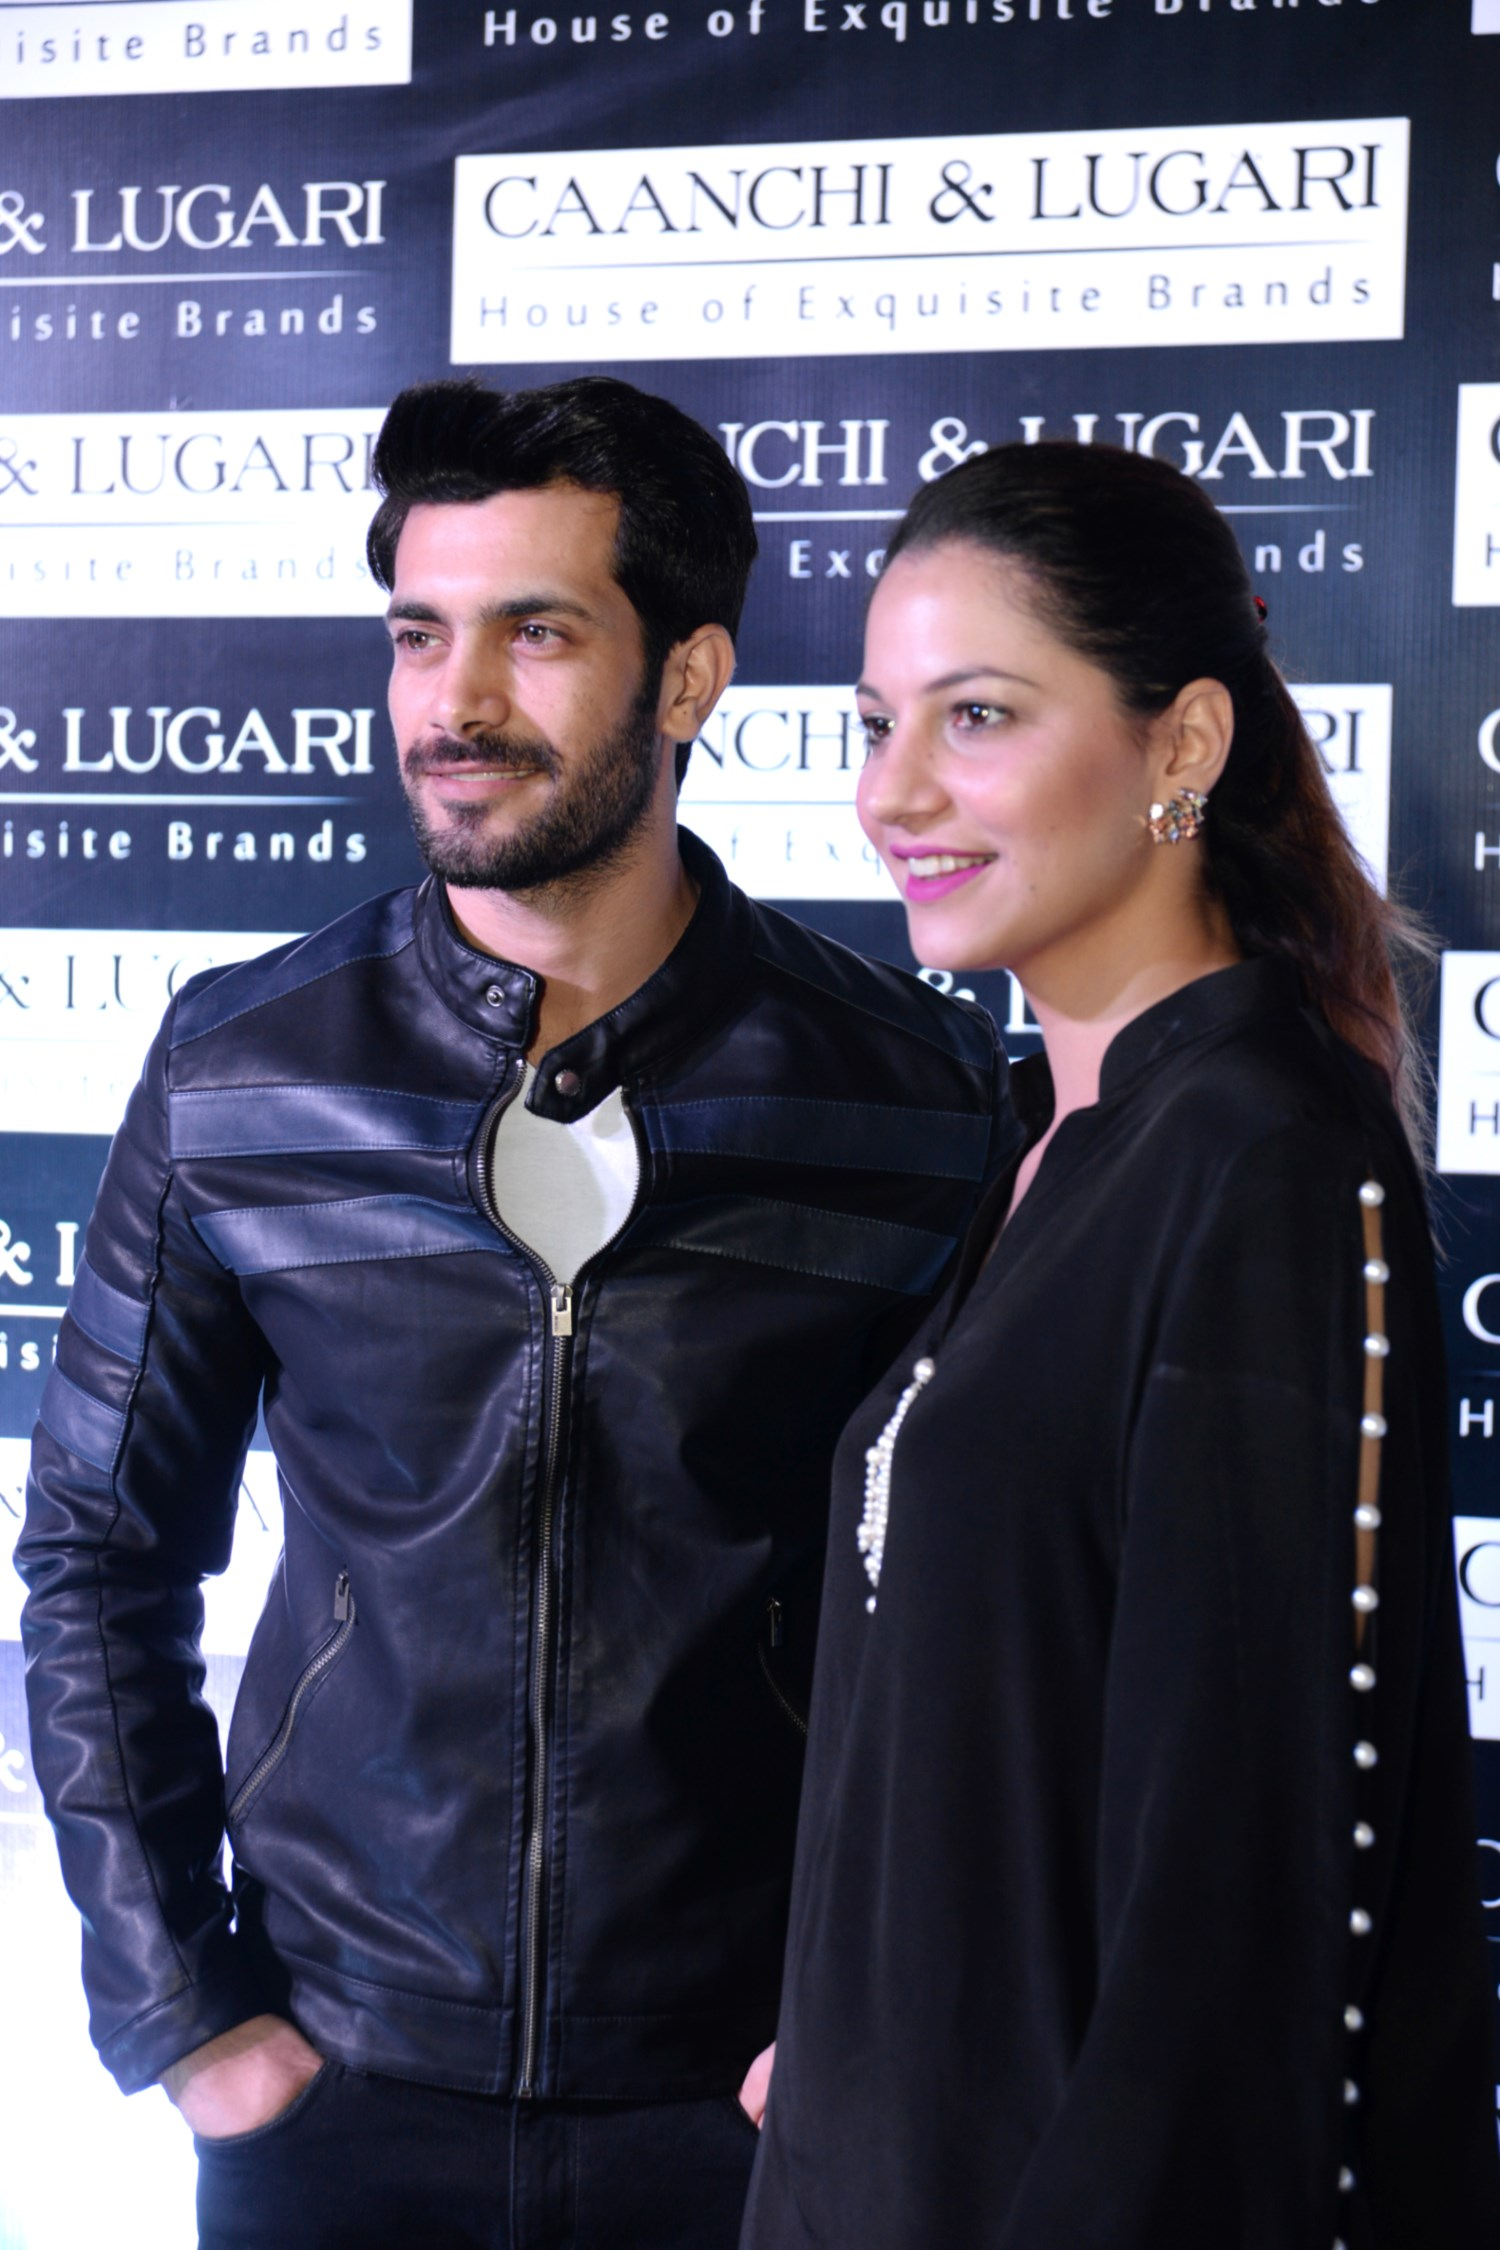 Shahzad Noor and Cybil Chowdhry